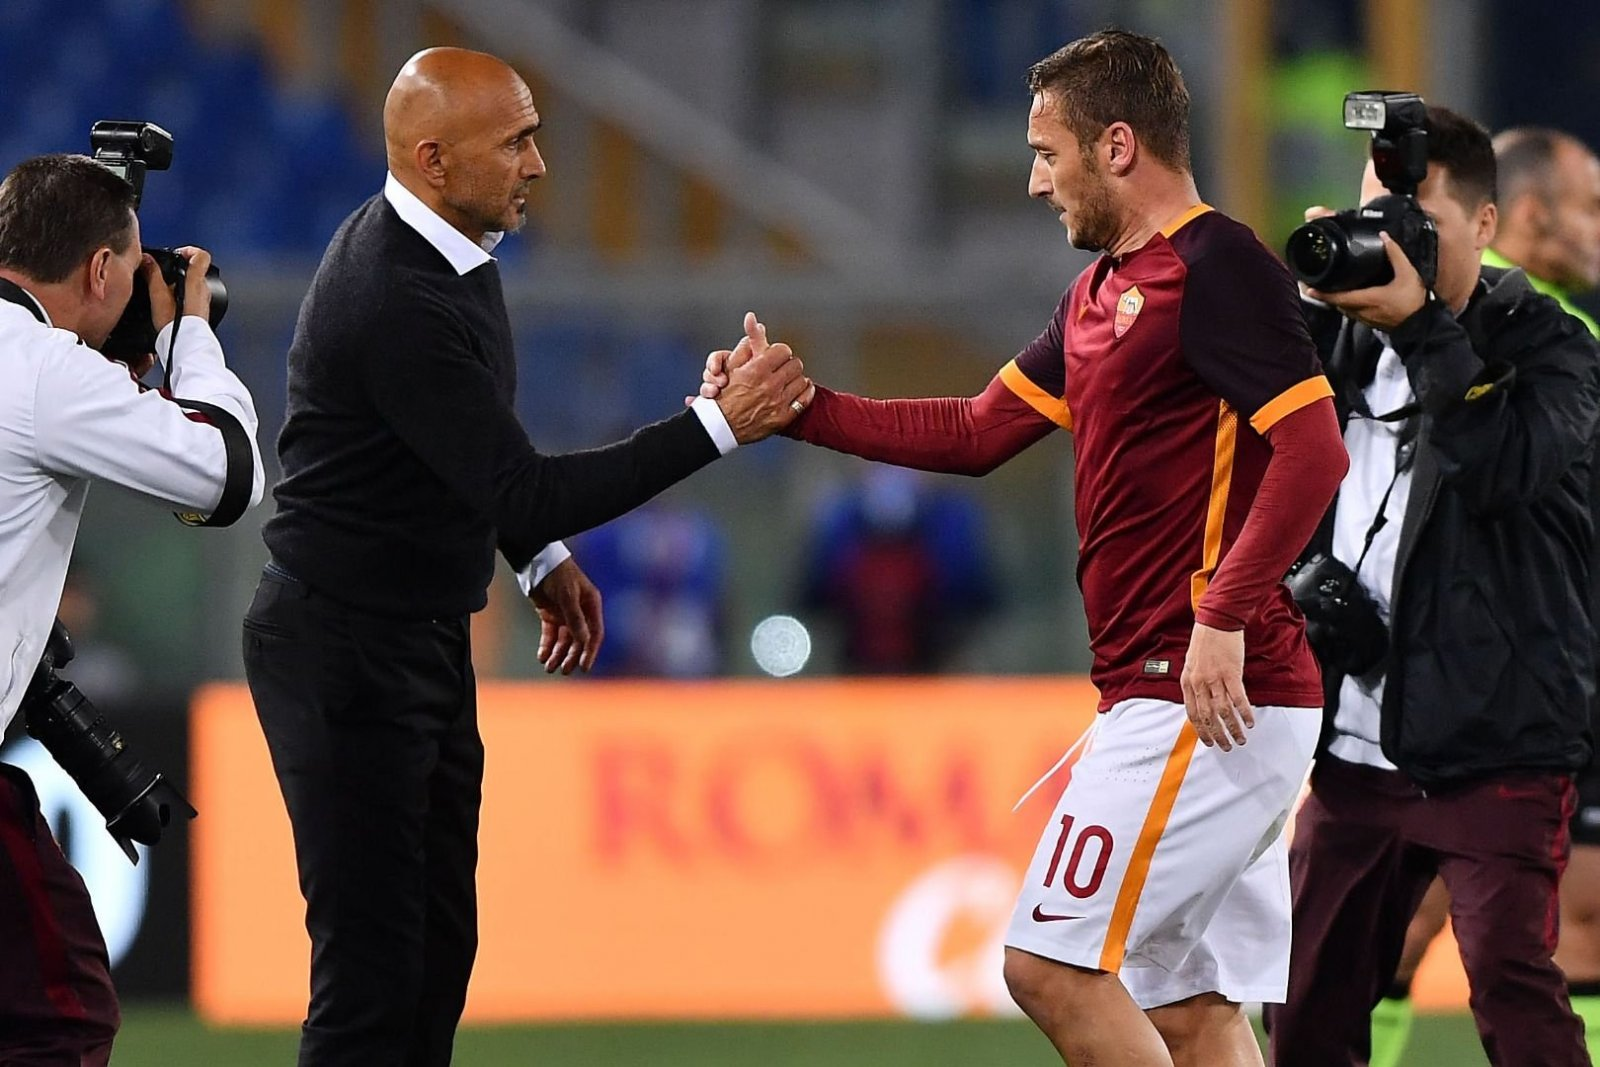 Inter coach Spalletti continues feud with Roma and Totti